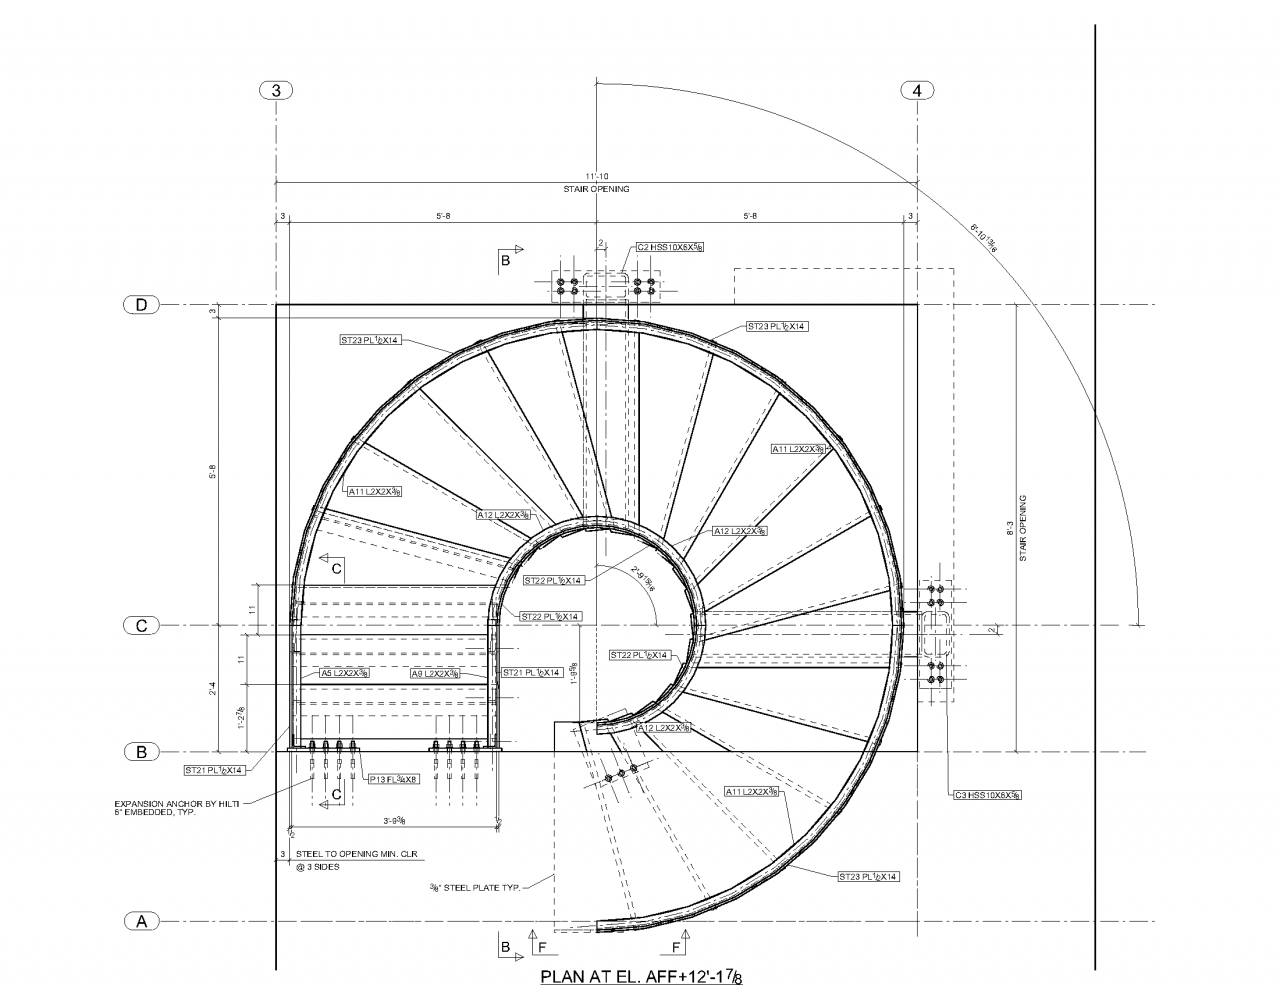 Pin By Ghadainteriors On Internship Stairs Spiral Staircase Plan